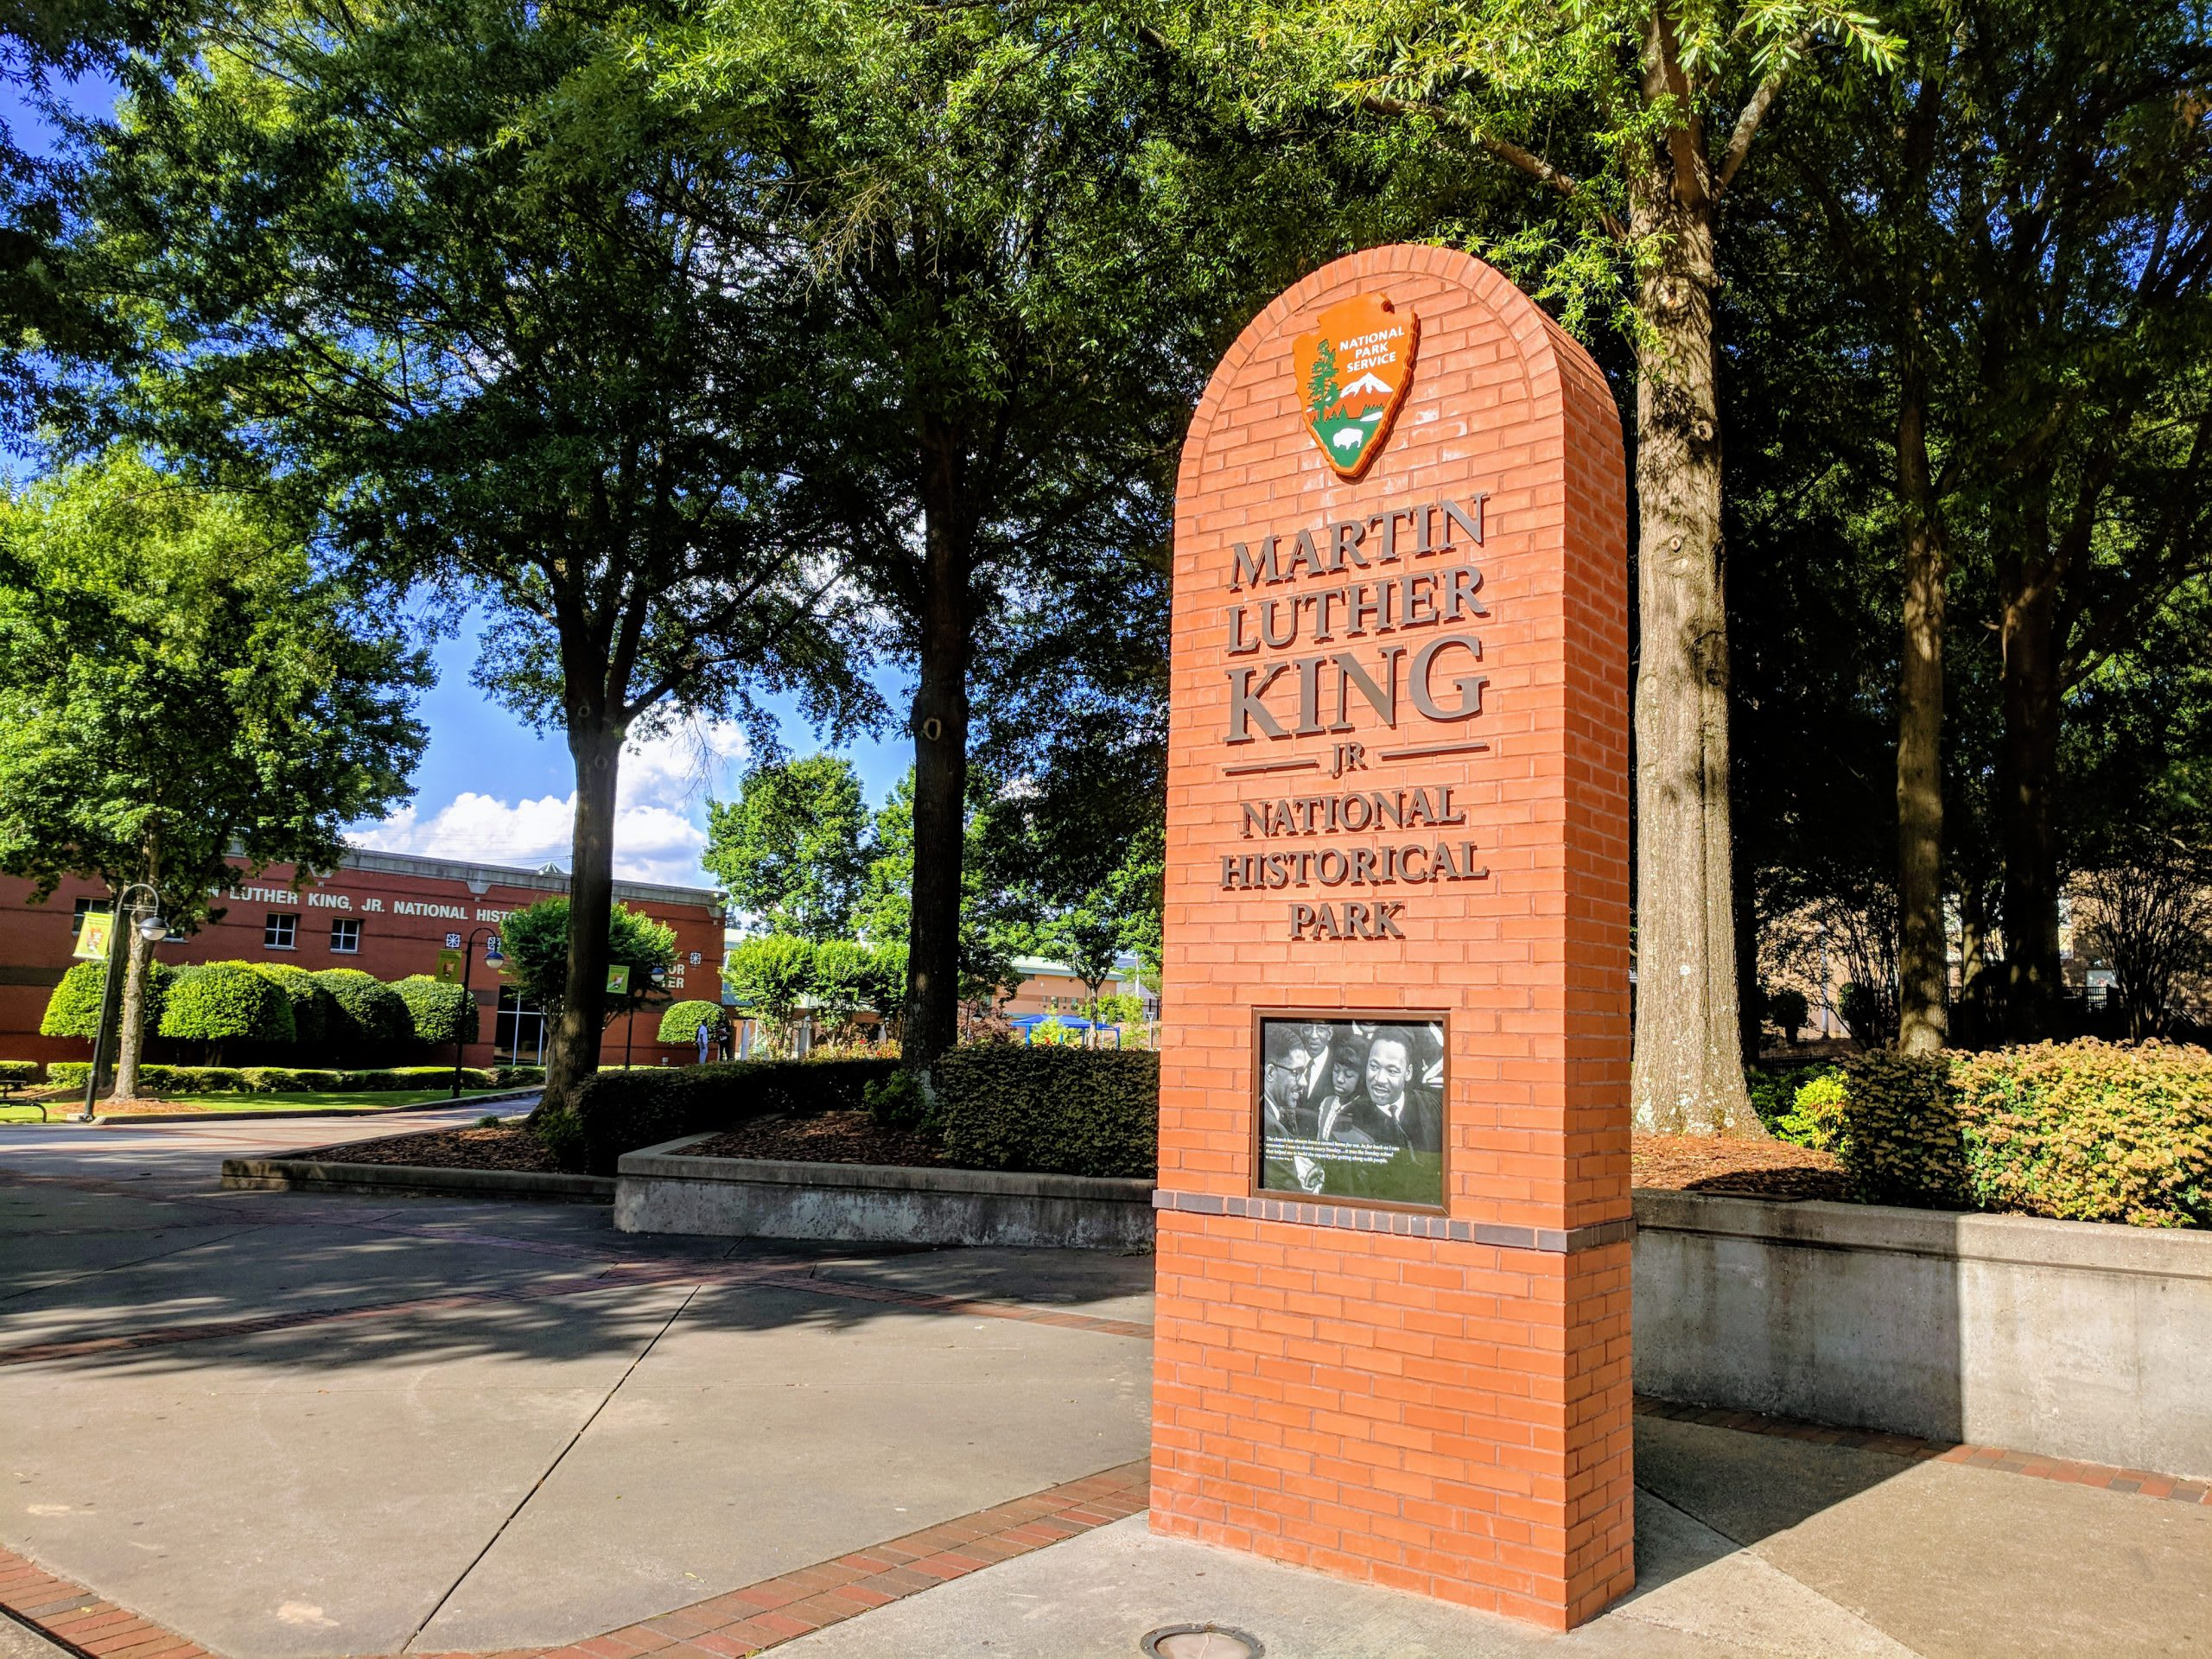 Martin Luther King, Jr. National Historical Park